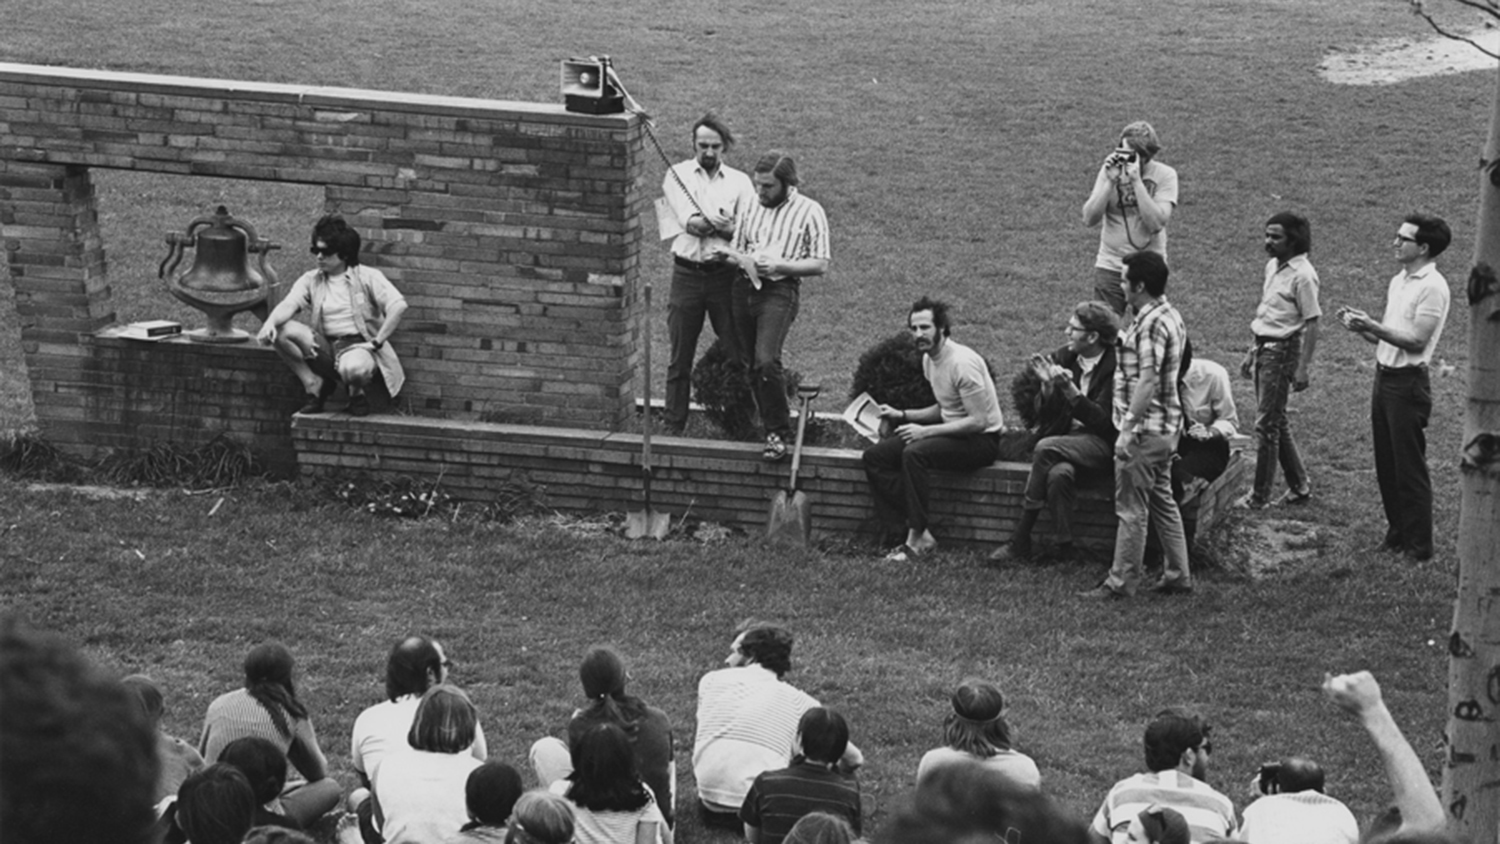 Kent State Shootings: May 4 Digital Archive